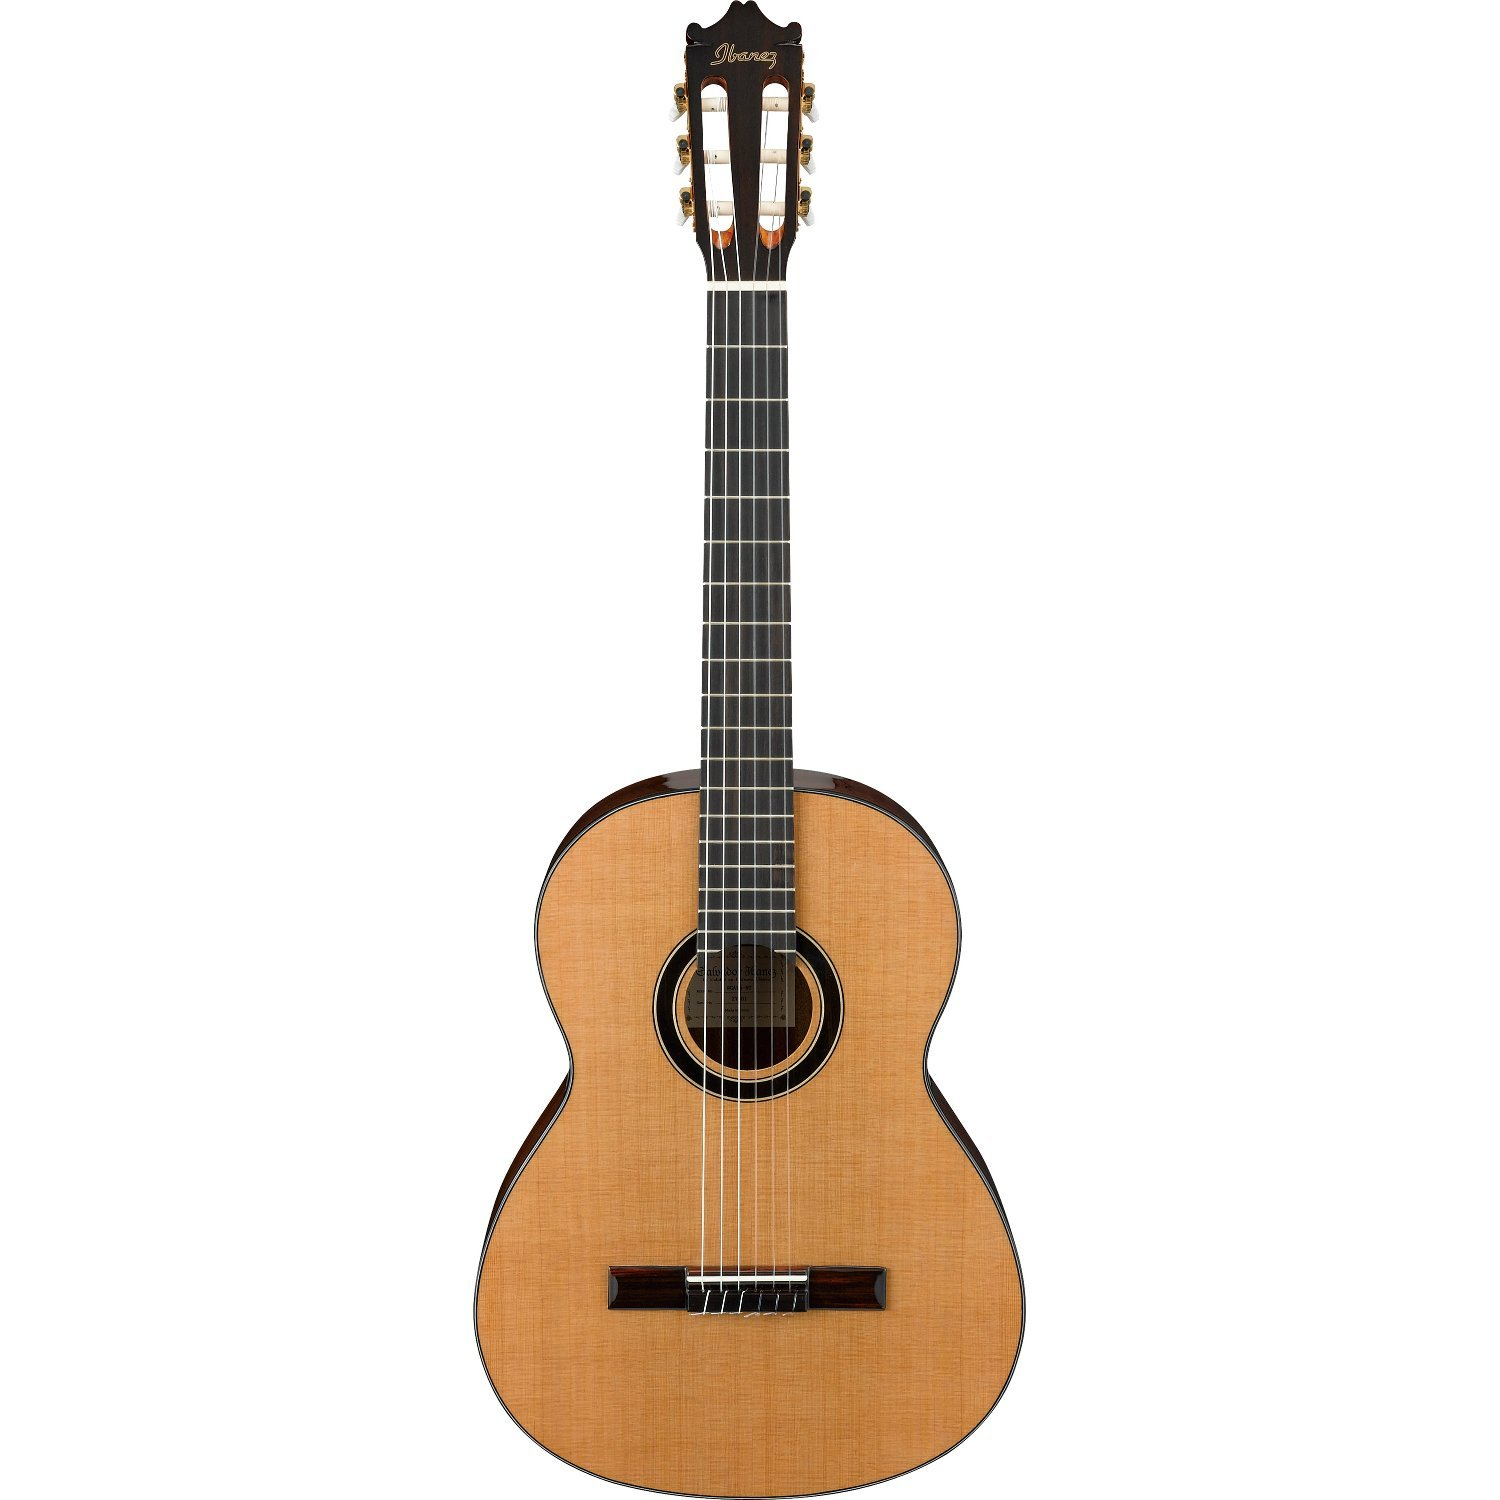 test ibanez ga15 guitare classique acoustique guide d 39 achat guitare. Black Bedroom Furniture Sets. Home Design Ideas